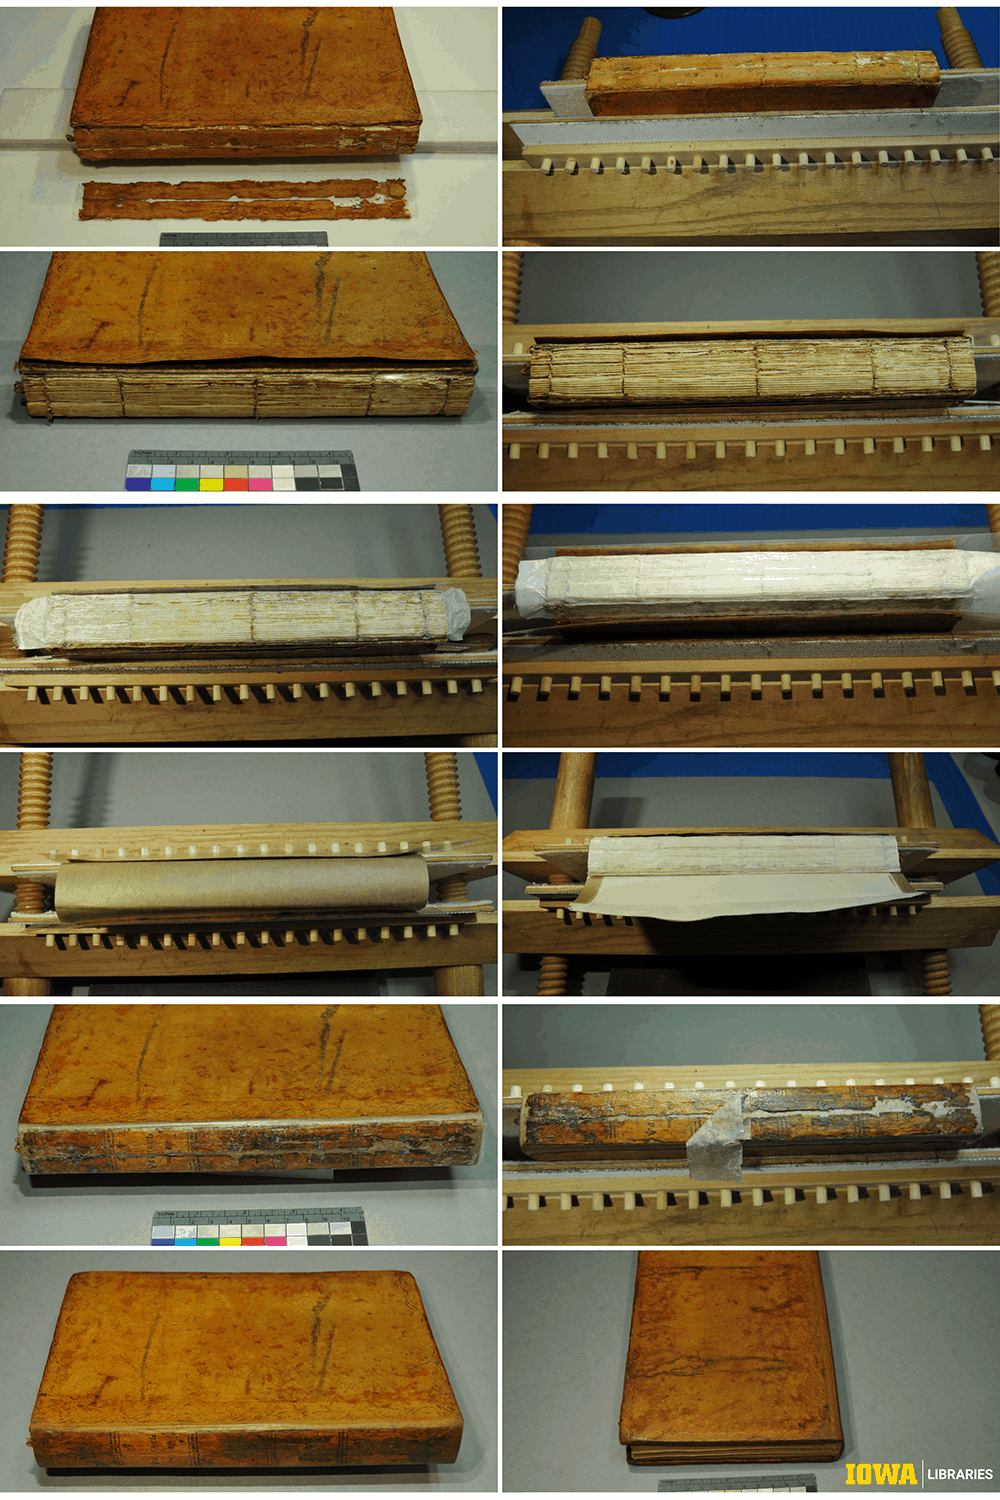 A series of photos shows the spine repair for this book.